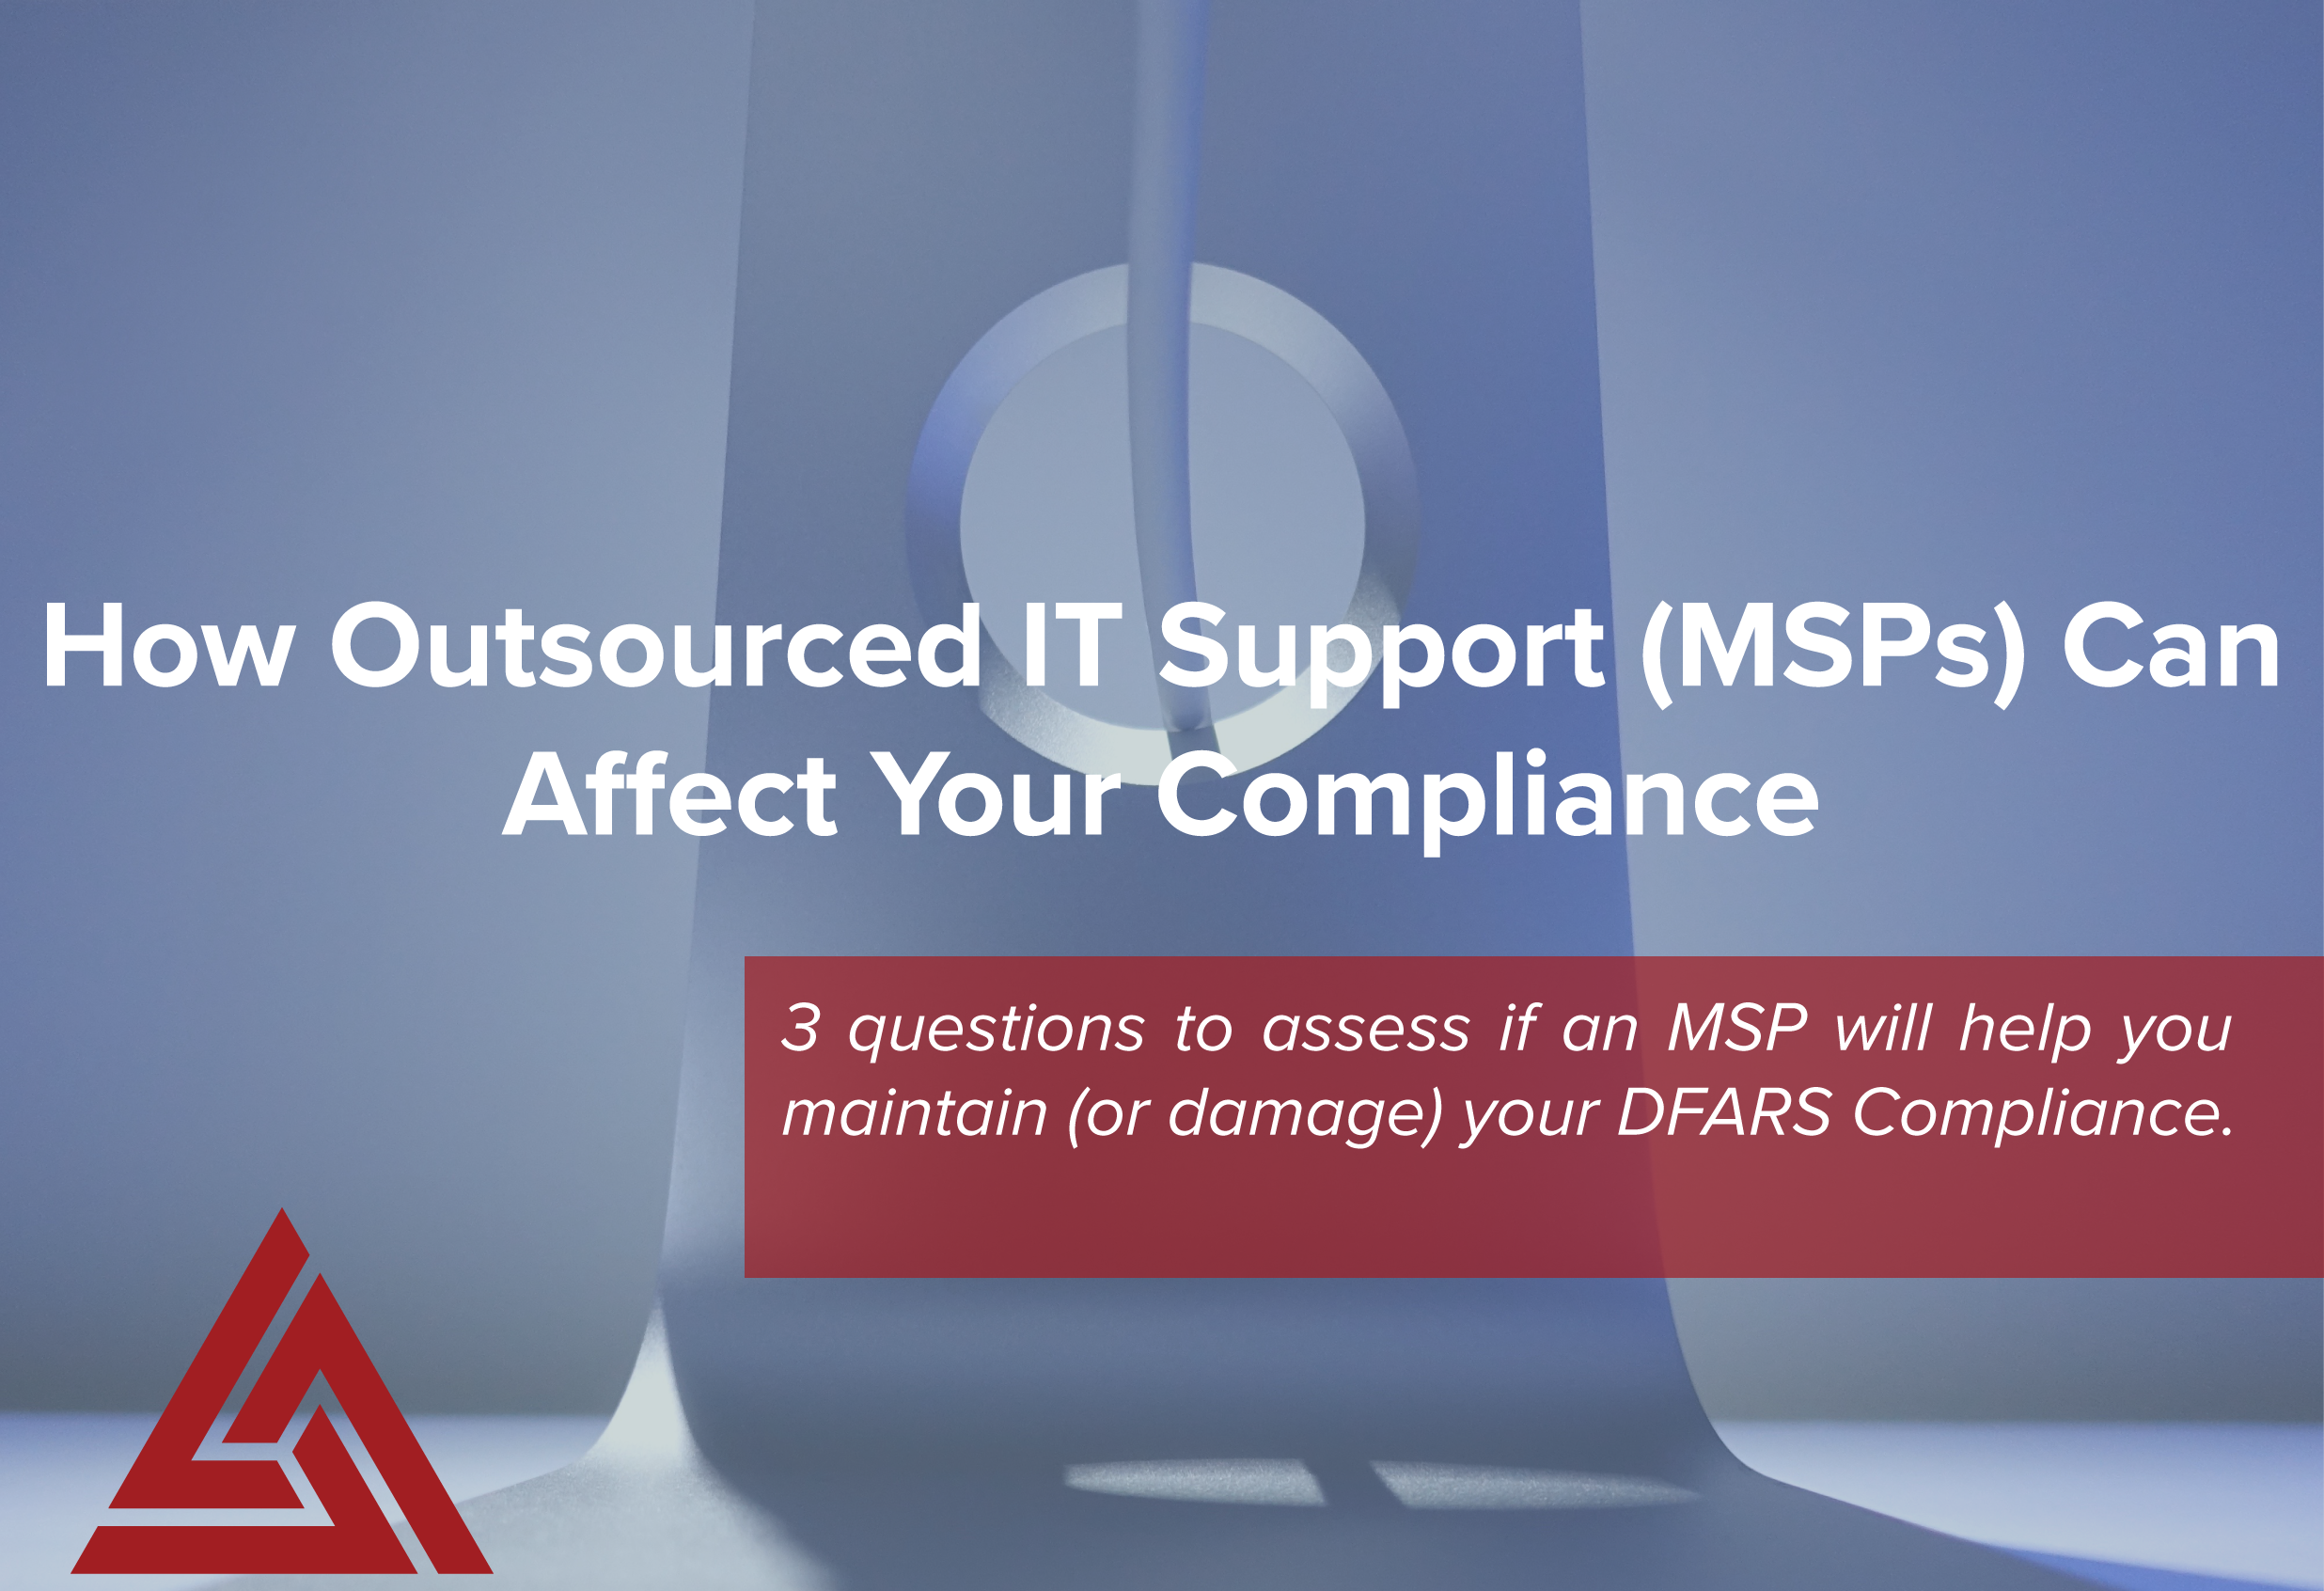 How Outsourced IT Support (MSPs) Can Affect Your Compliance